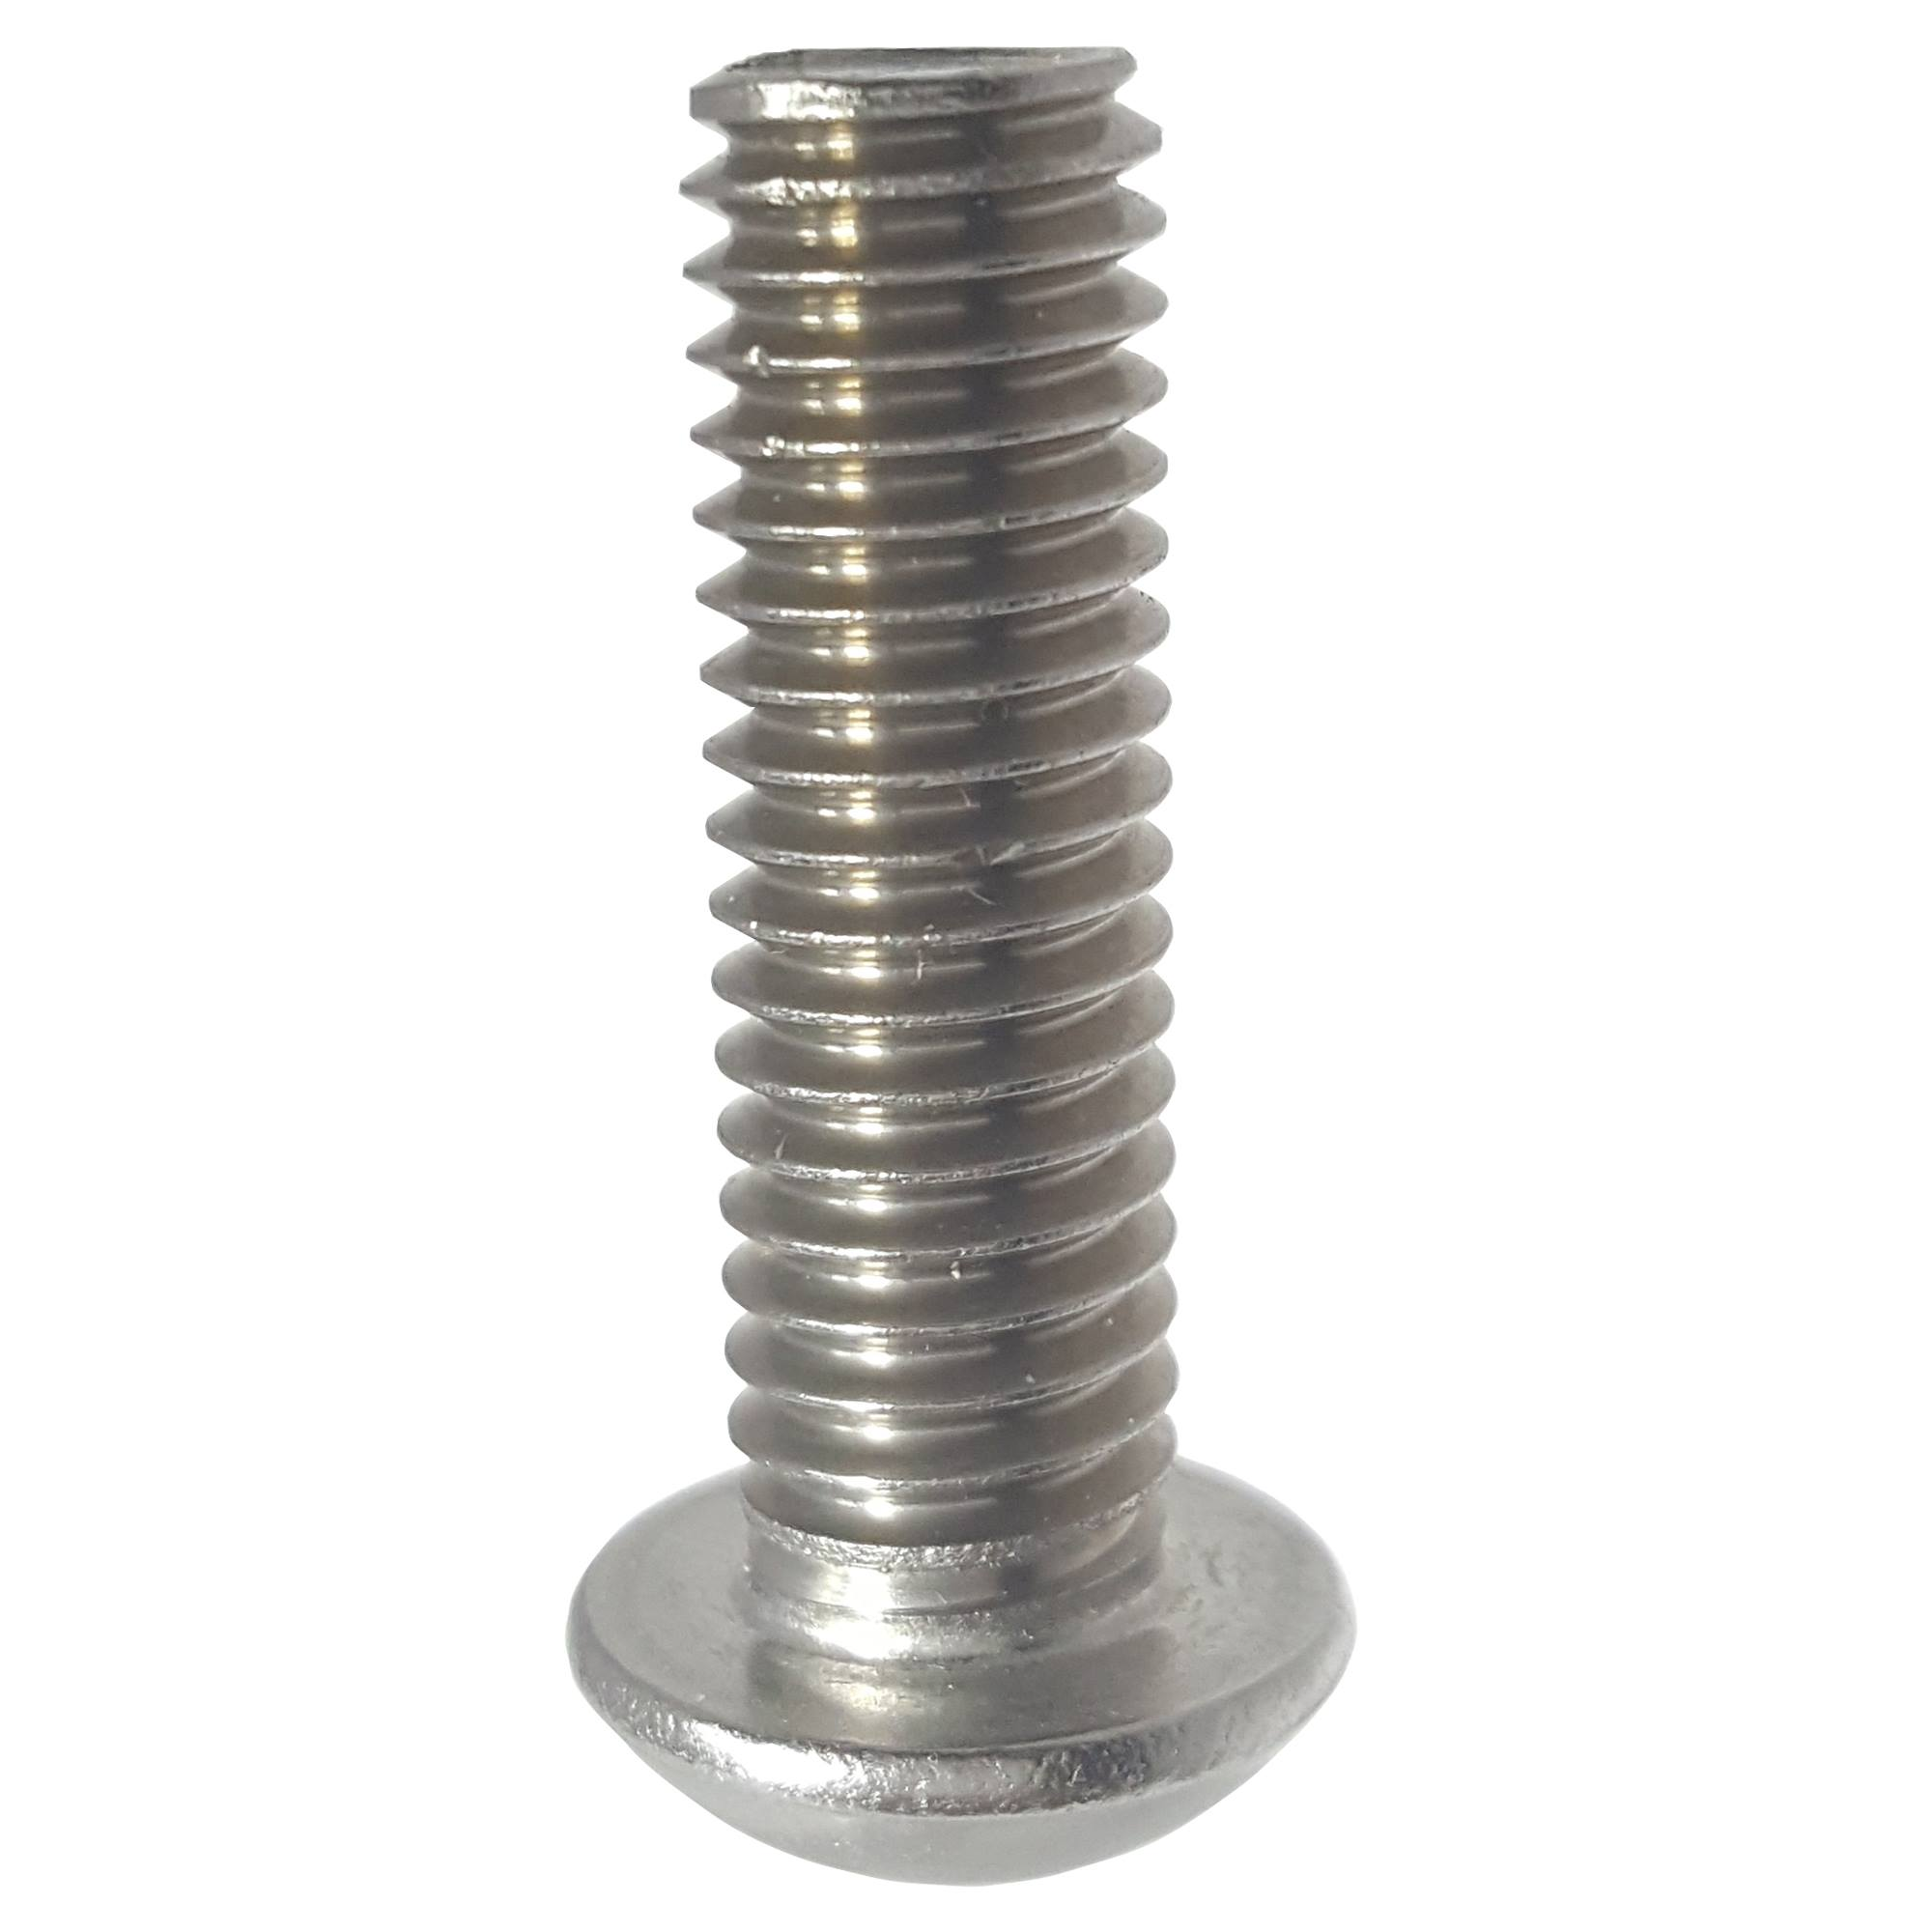 Female 4.5 Length, Zinc Plated Brass 0.25 OD Pack of 1 #10-32 Screw Size Hex Standoff